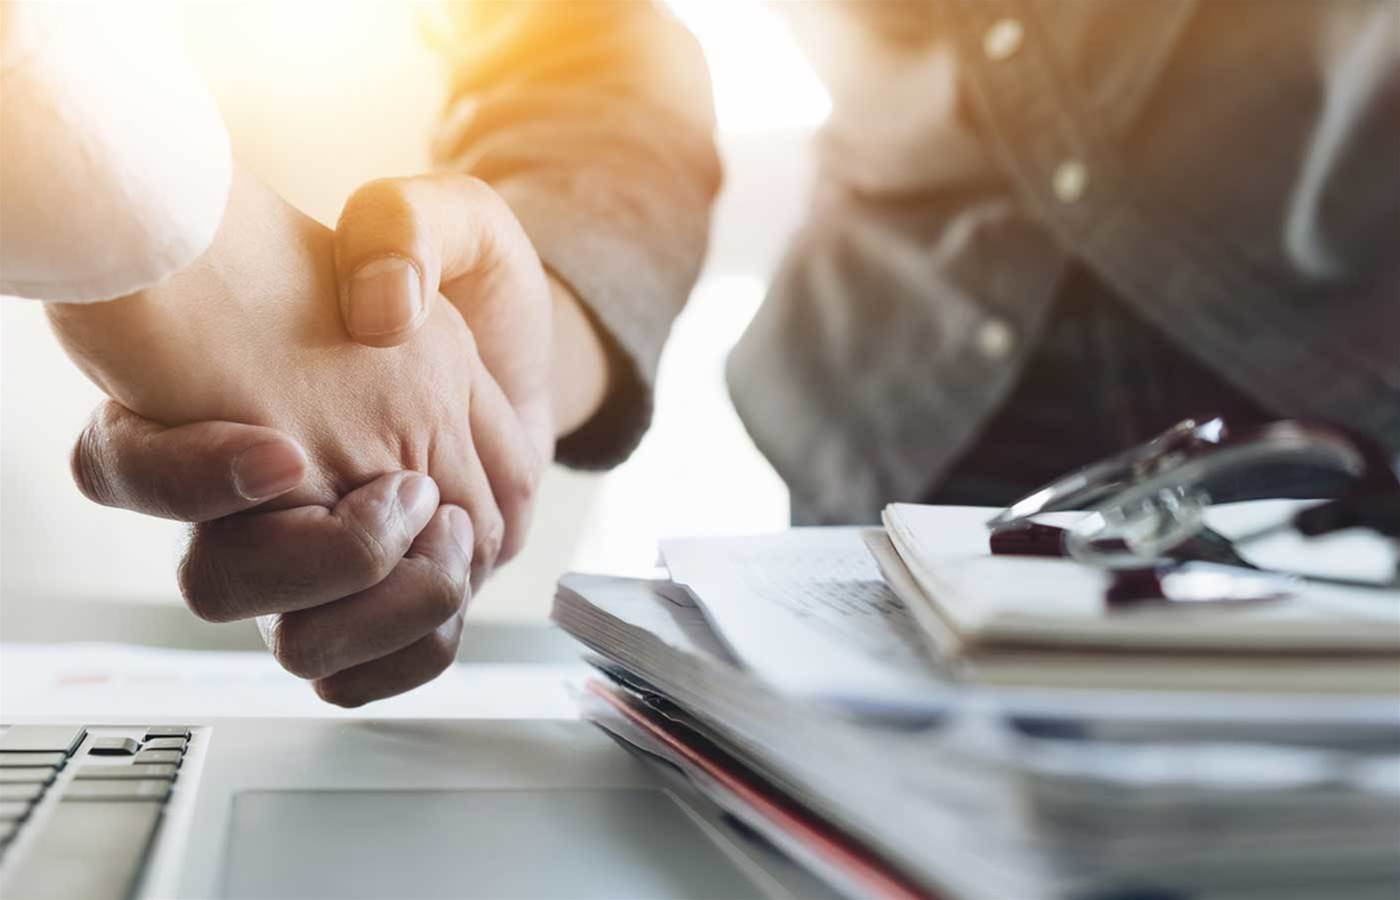 Computergate sets sights on west coast with iTLC acquisition